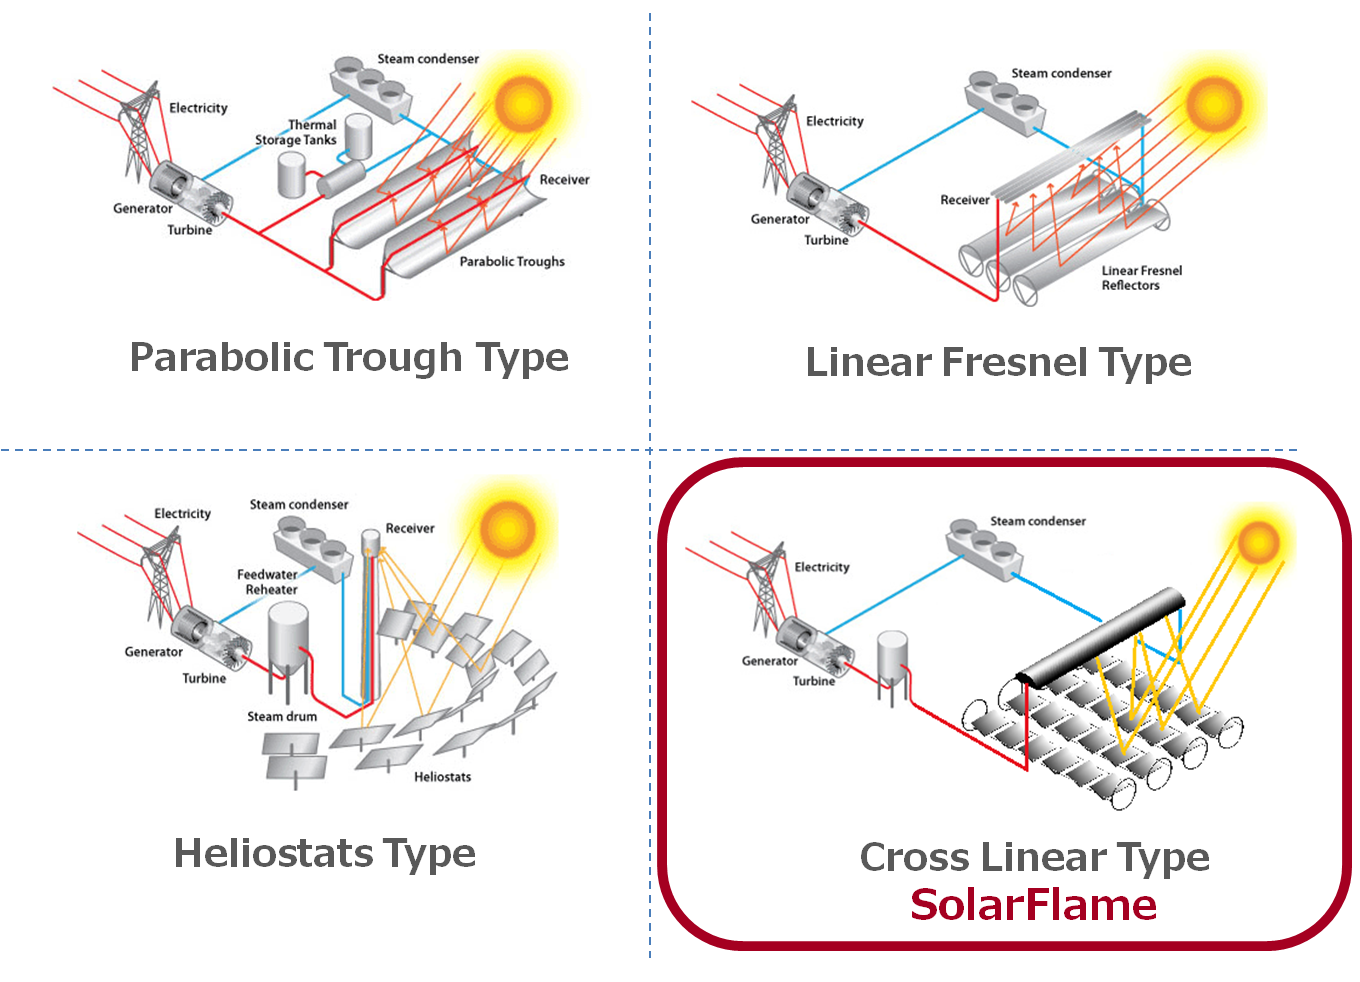 Solar Thermal Power Generation - Concentrated solar thermal